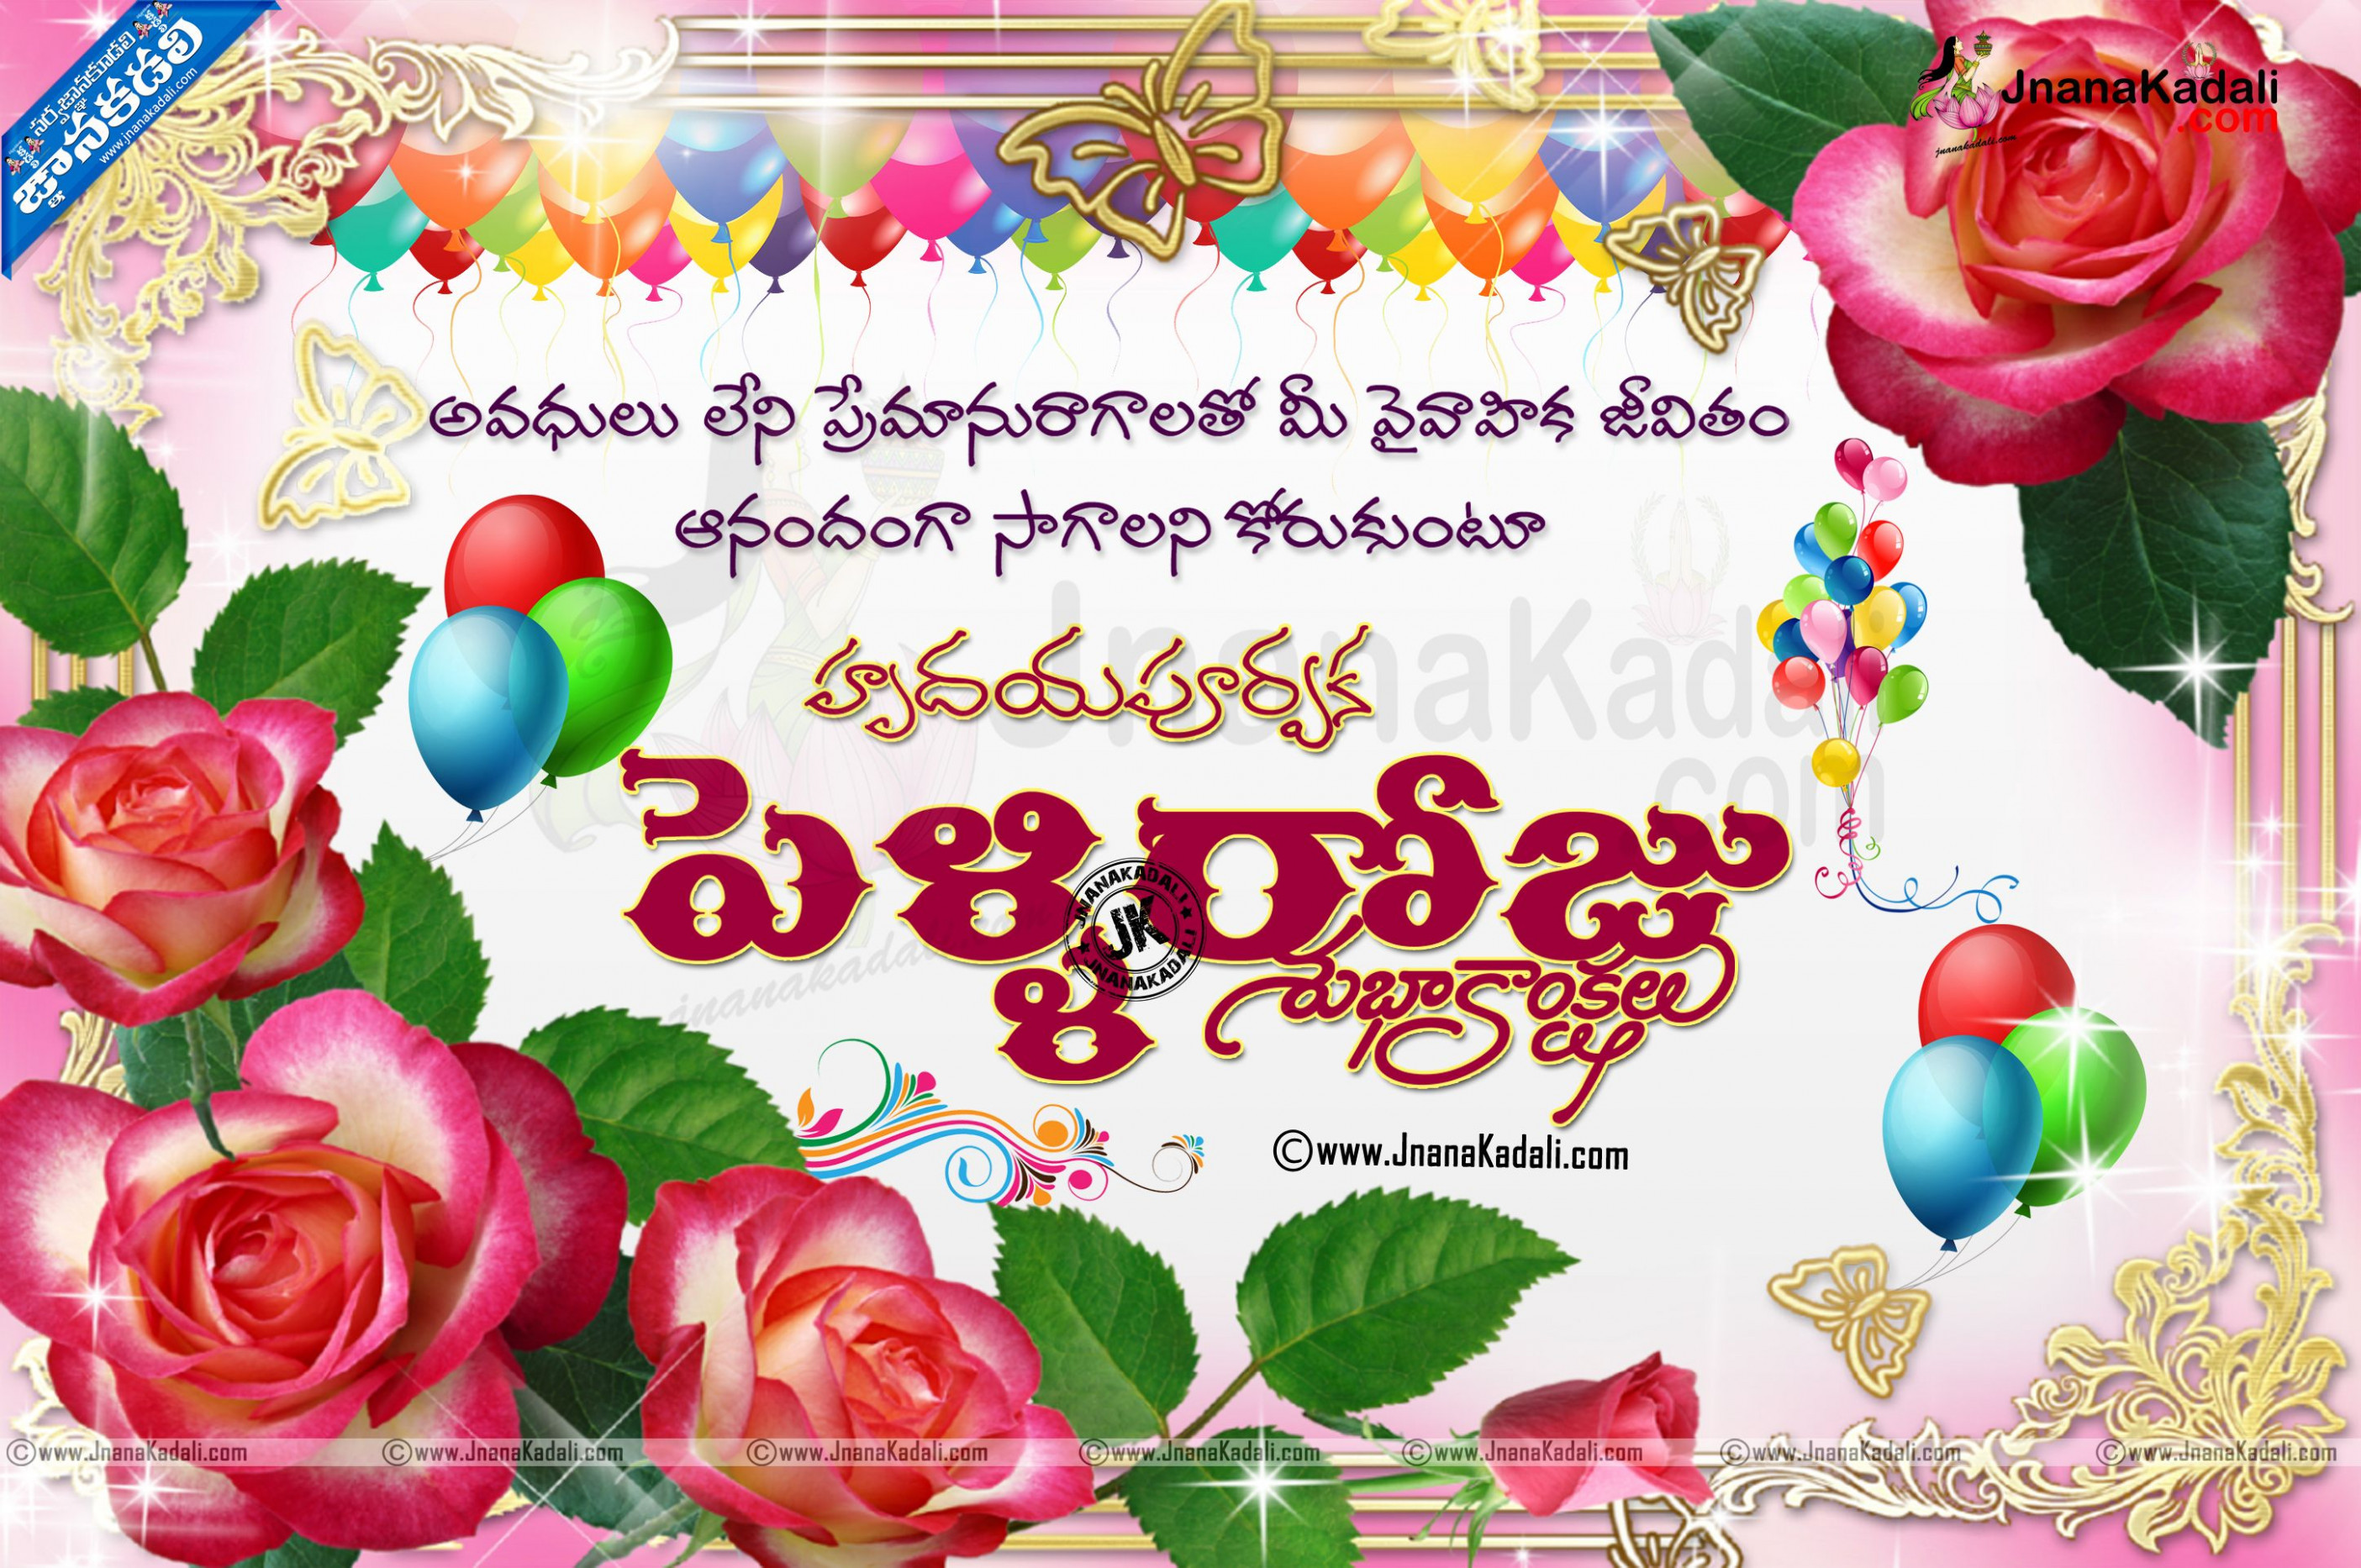 Marriage day wishes hd wallpapers Best Telugu Marriages ...